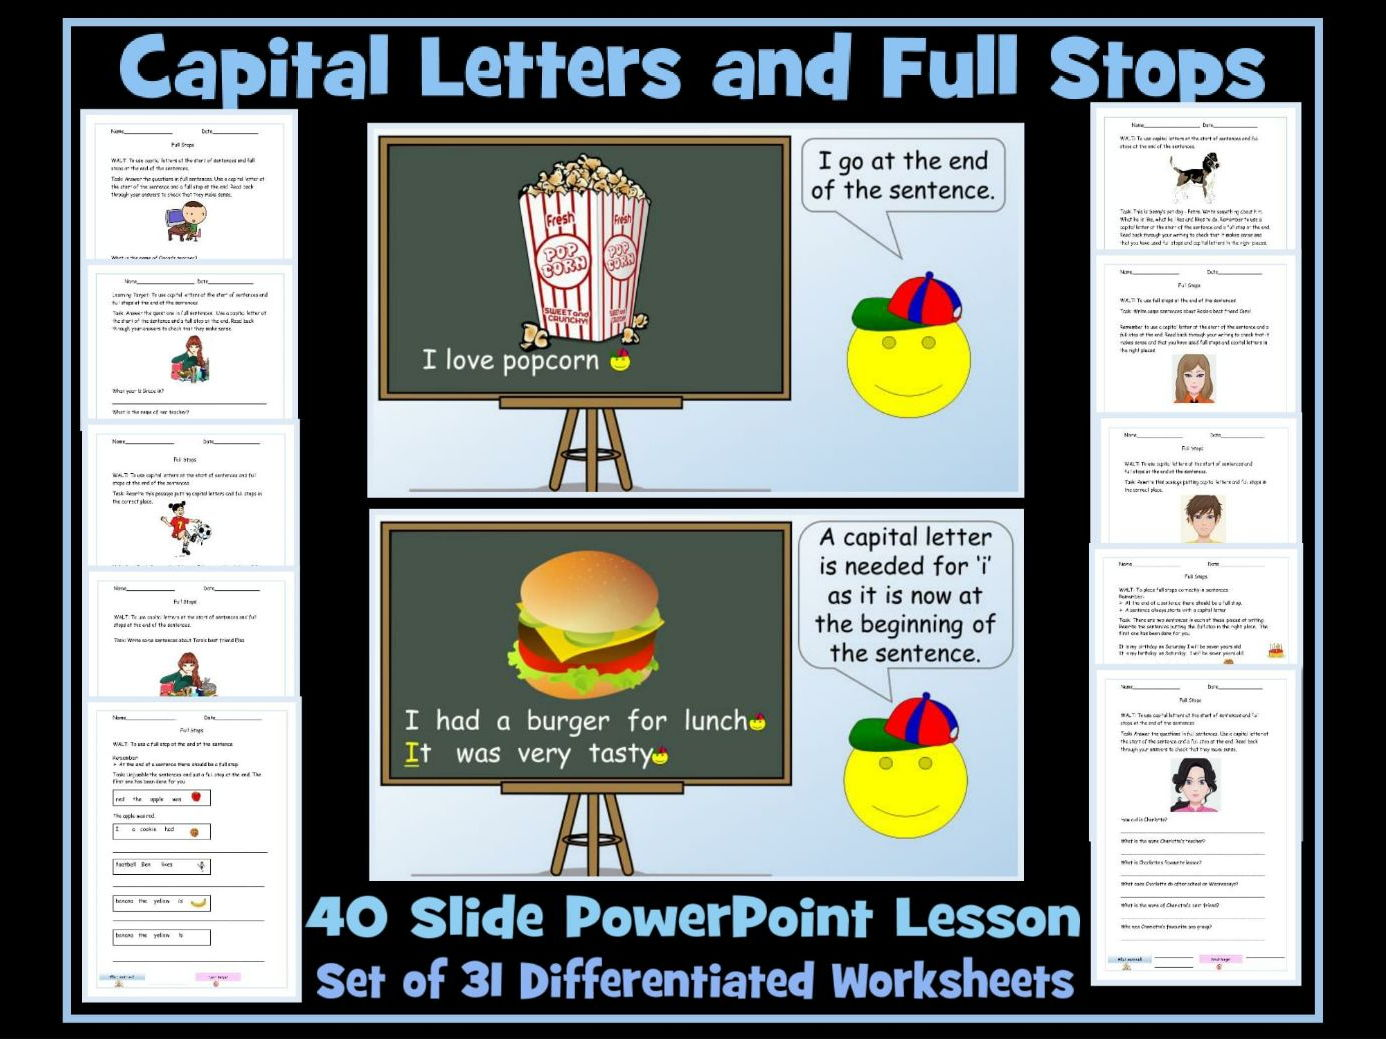 Using Full Stops and Capital Letters - 40 Slide PowerPoint Lesson and Two Sets of Worksheets